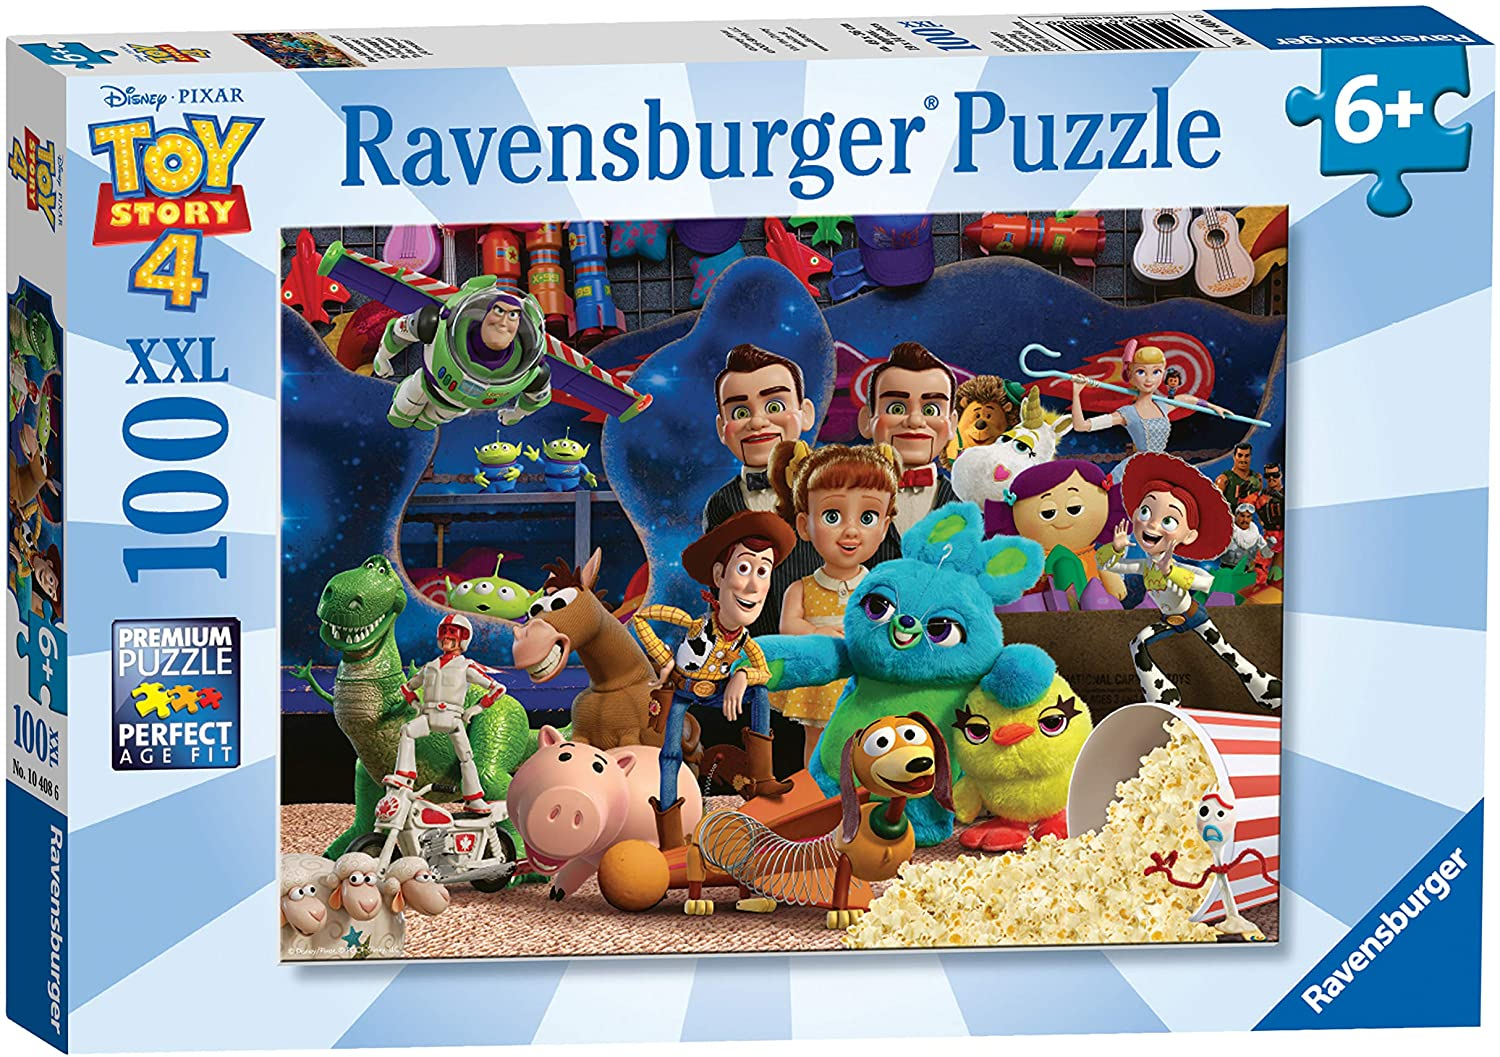 Ravensburger Toy Story 4 ~ To the Rescue 100 pc Puzzle 6+